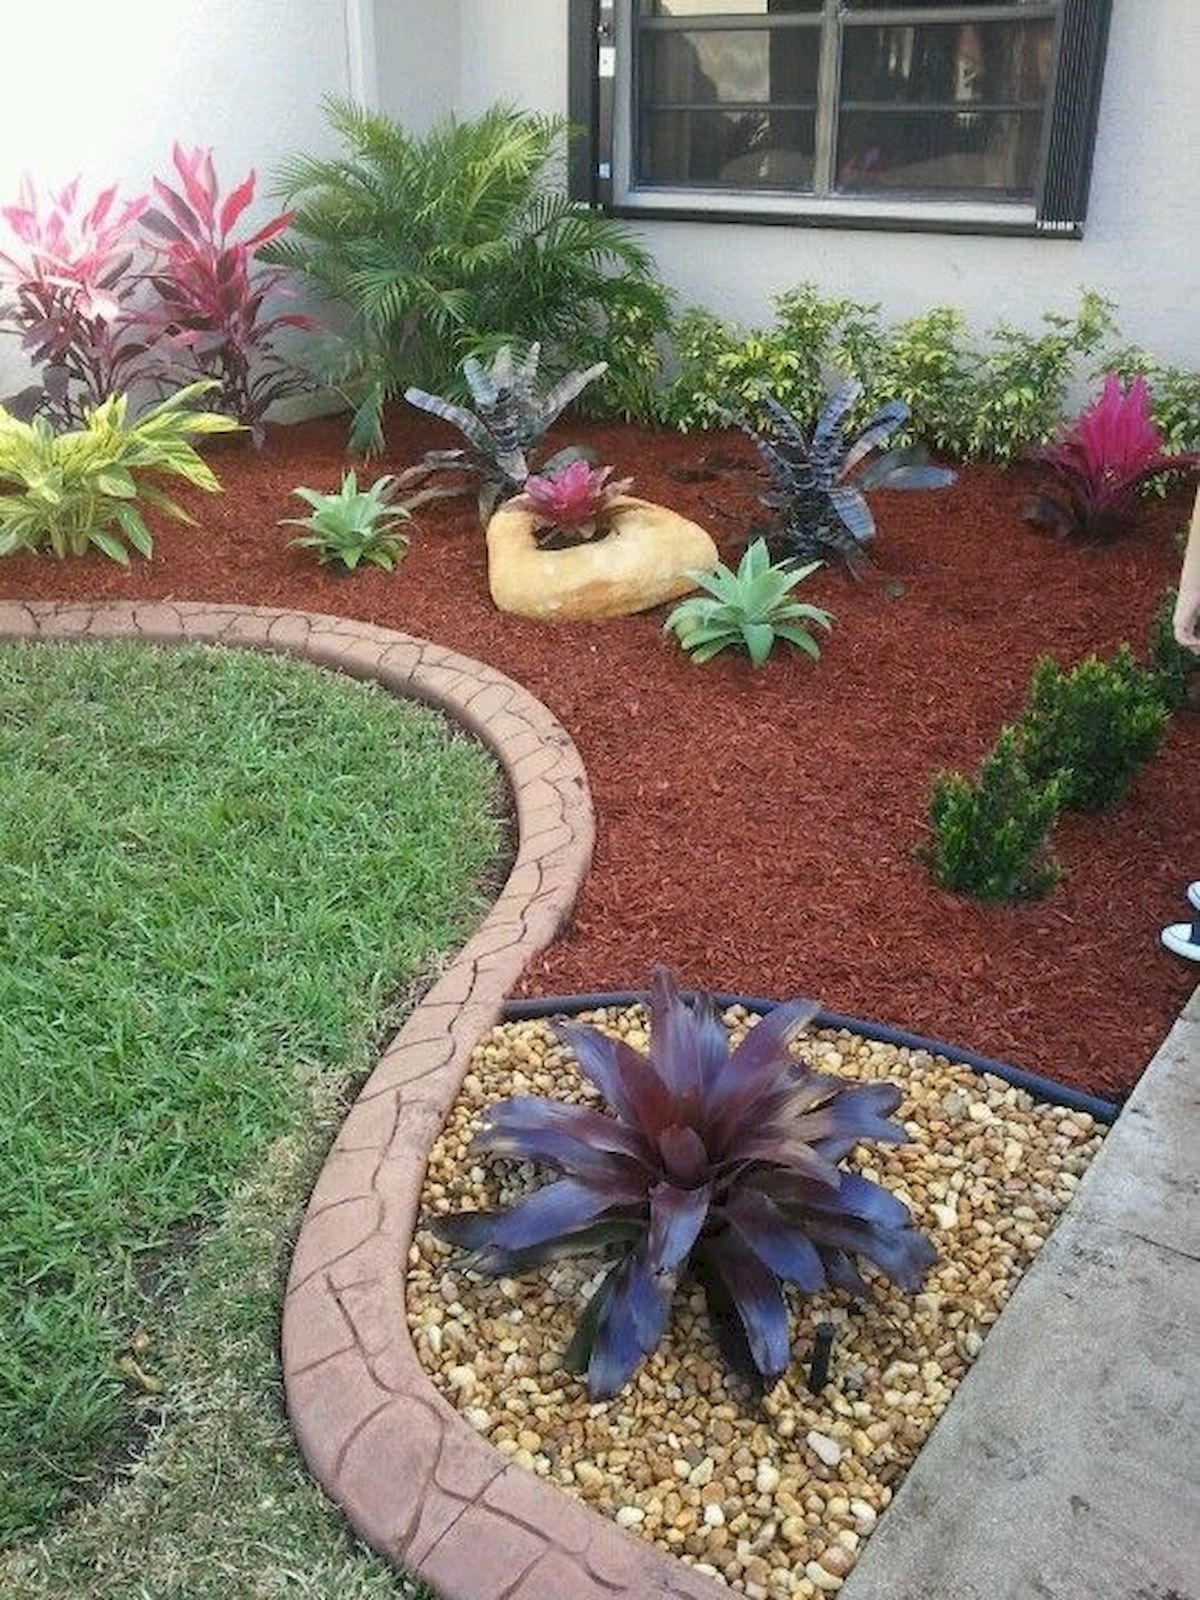 90 Simple And Beautiful Front Yard Landscaping Ideas On A Budget 5 Outdoorideaspatio Front Garden Landscape Front Yard Landscaping Design Front Yard